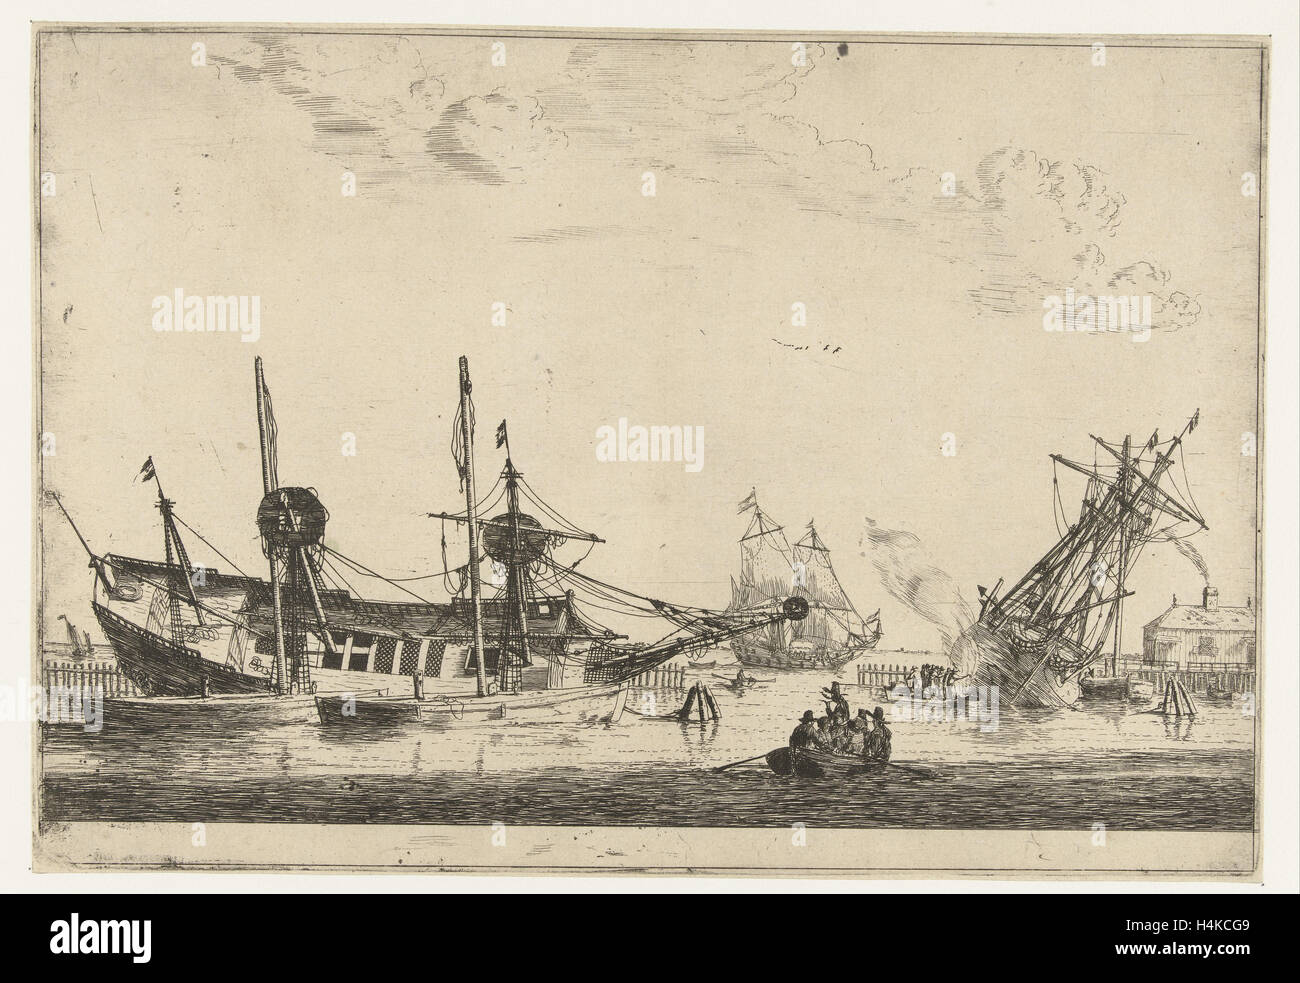 Two-keeled sailboats, Reinier Nooms, 1650 - 1664 - Stock Image